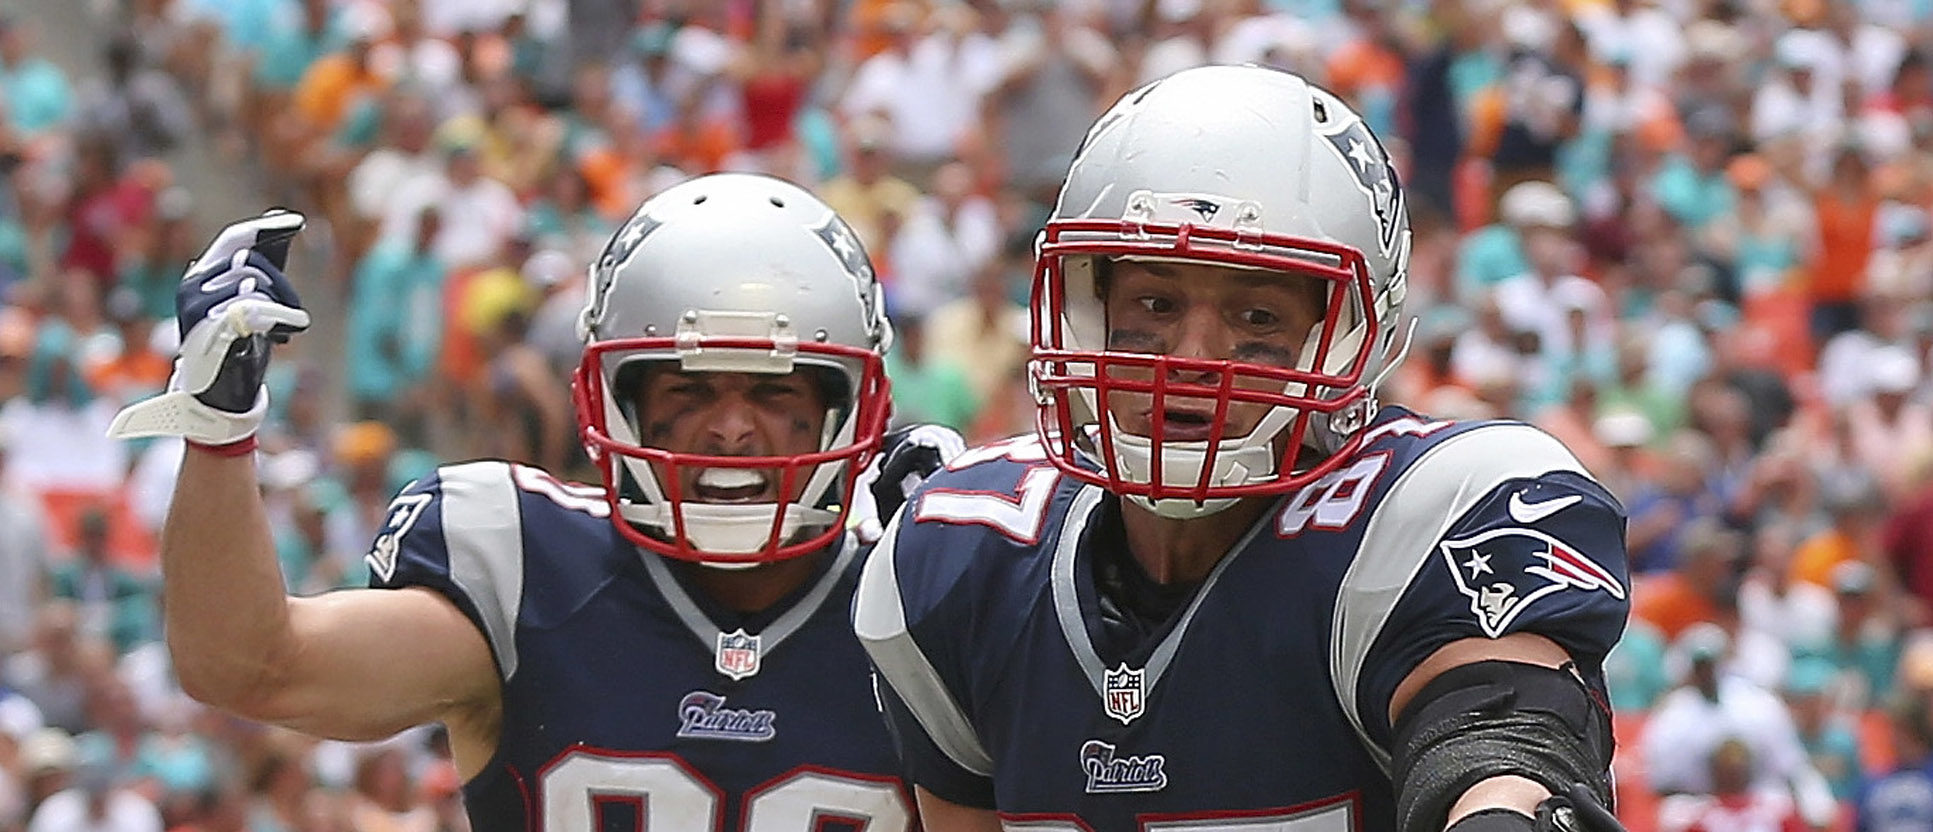 MIAMI GARDENS, FL - SEPTEMBER 07:  Rob Gronkowski #87 of the New England Patriots celebrates his second quarter touchdown on a pass from Tom Brady #12 as teammate Danny Amendola #80 looks on during a game against the Miami Dolphins at Sun Life Stadium on September 7, 2014 in Miami Gardens, Florida.  (Photo by Mike Ehrmann/Getty Images)